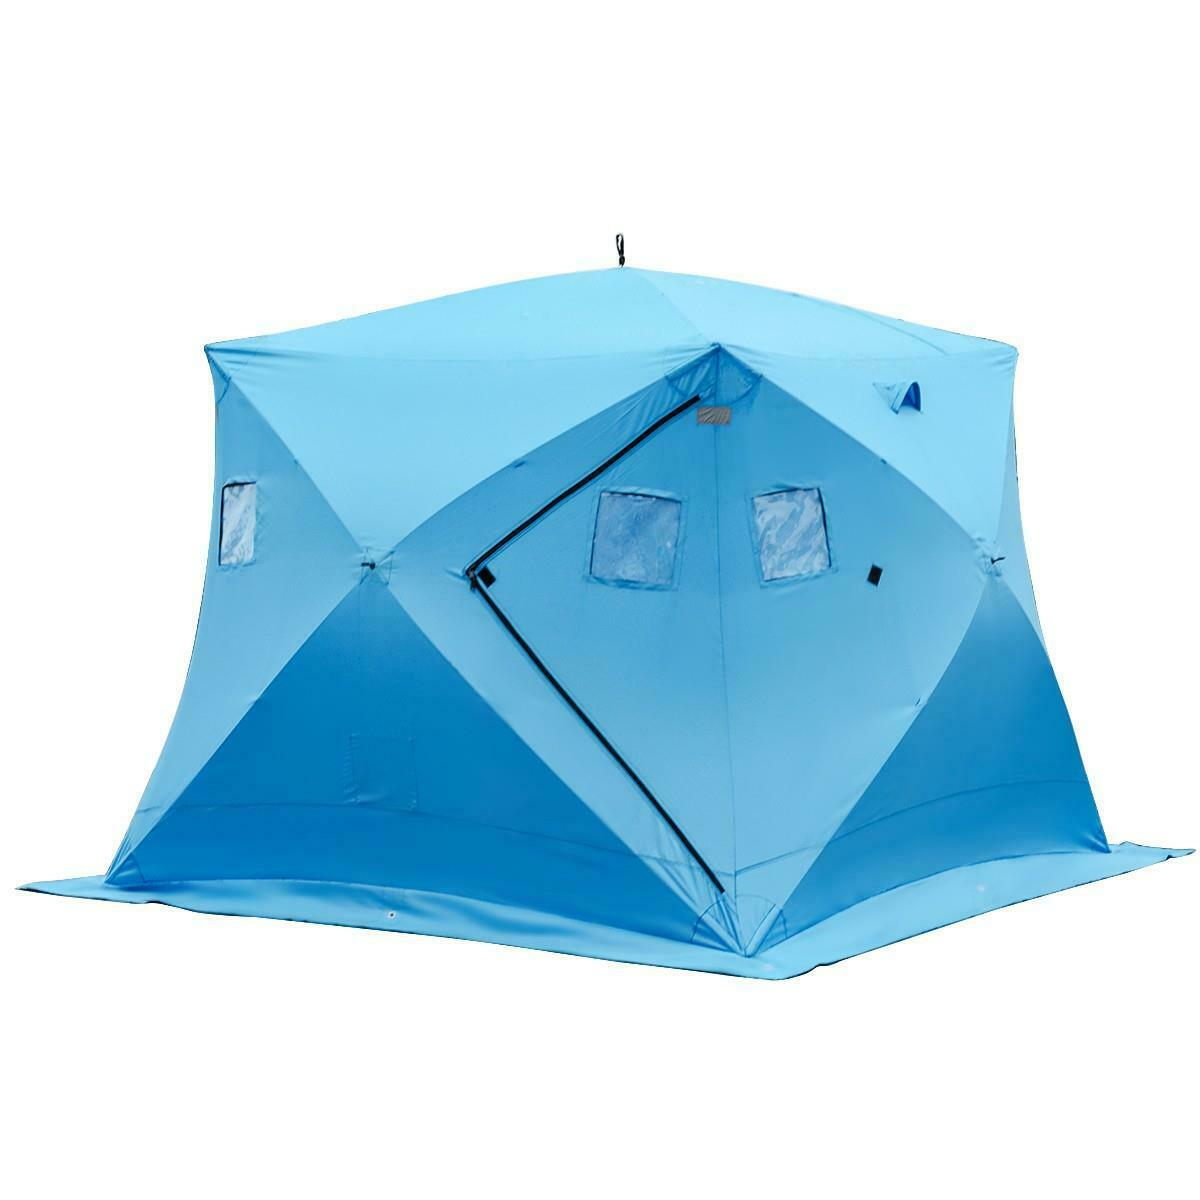 NEW Waterproof Durable 4-Person Fishing Ice  Shelter Tent With Storage Bag  best reputation